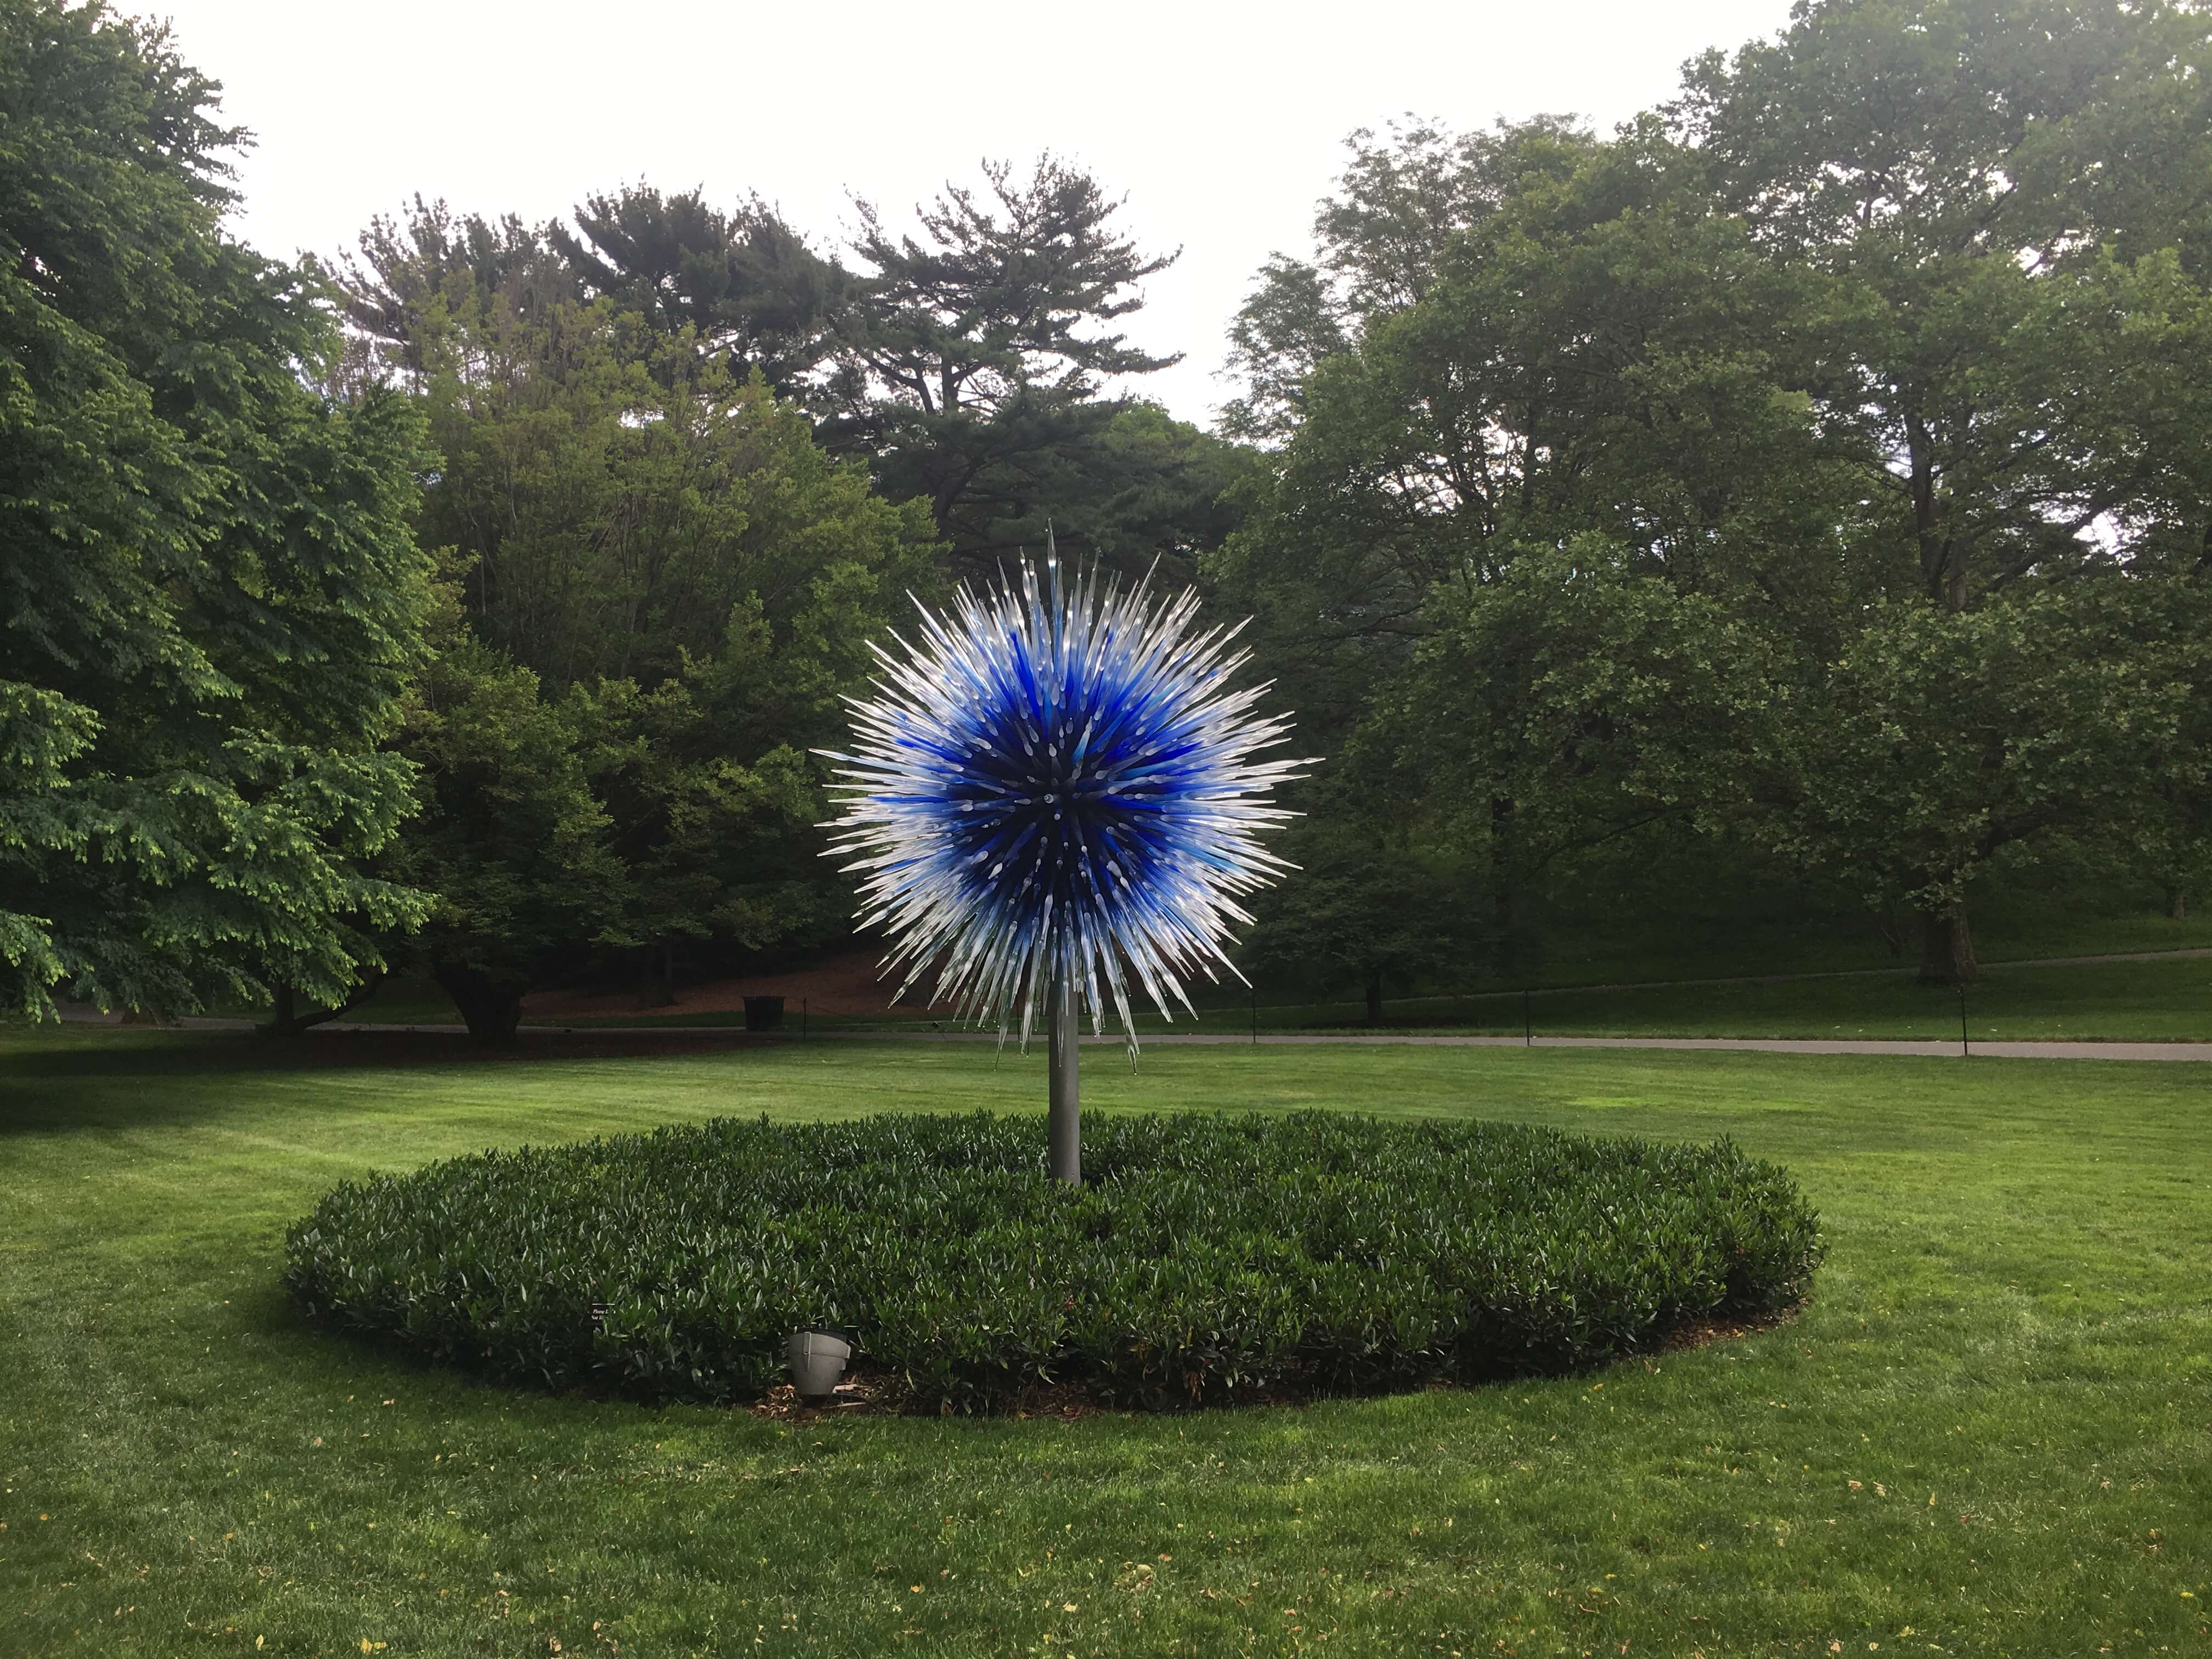 CHIHULY at New York Botanical Garden